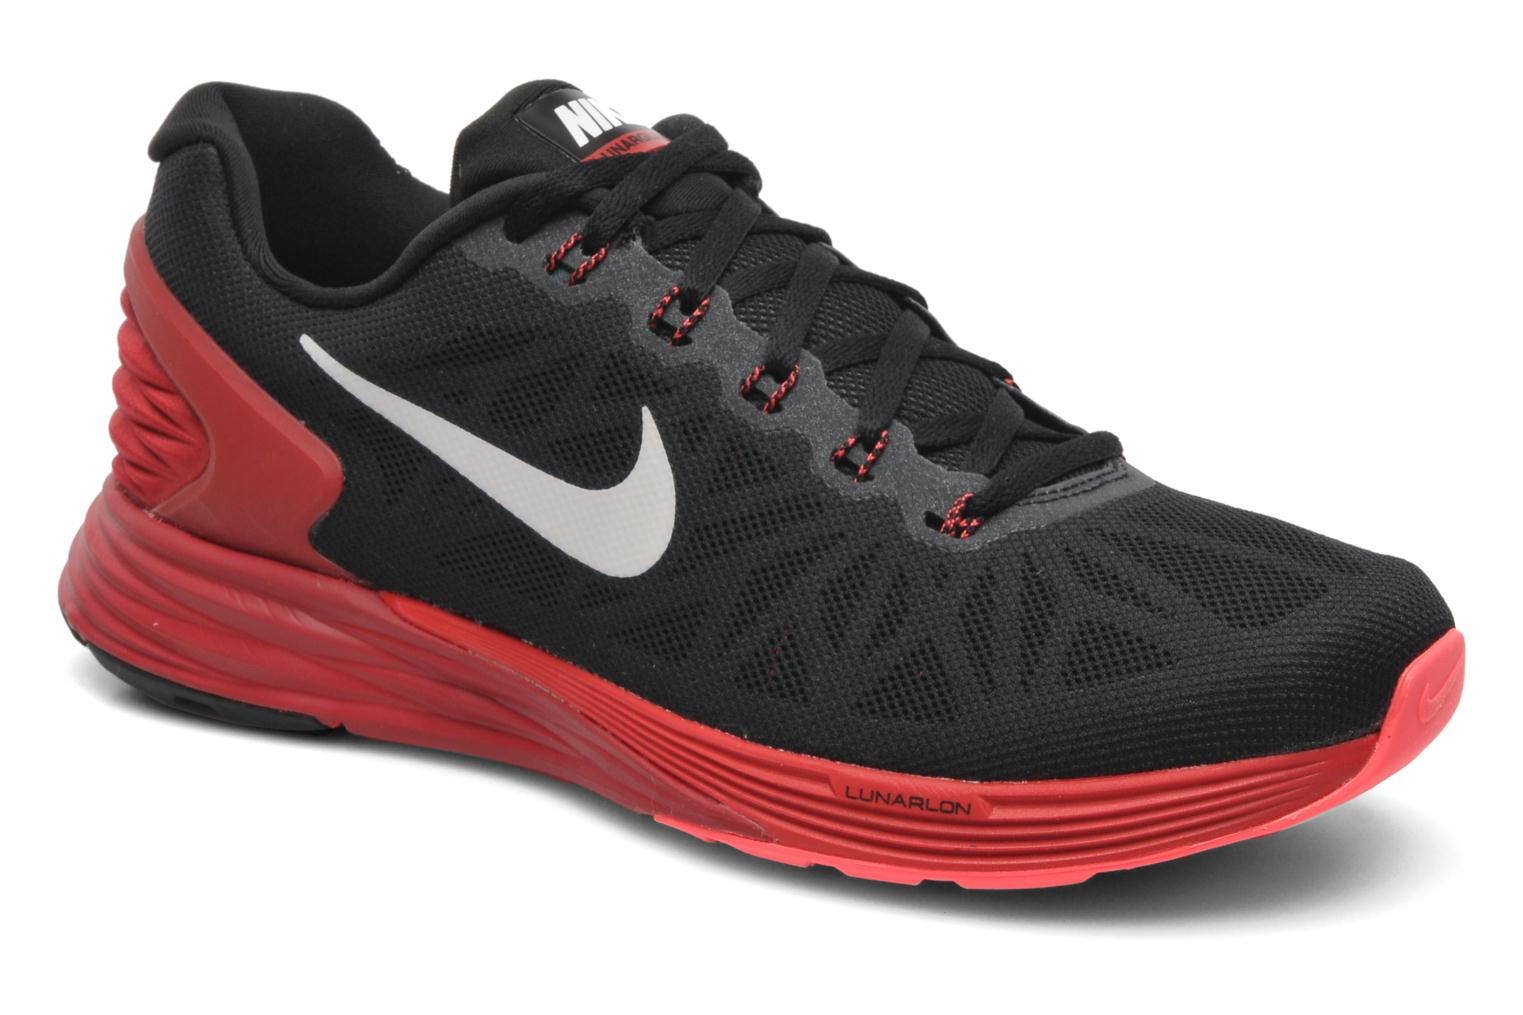 new style 4d230 52b1d france sport shoes nike nike lunarglide 6 black detailed view pair view  cb719 97c6f